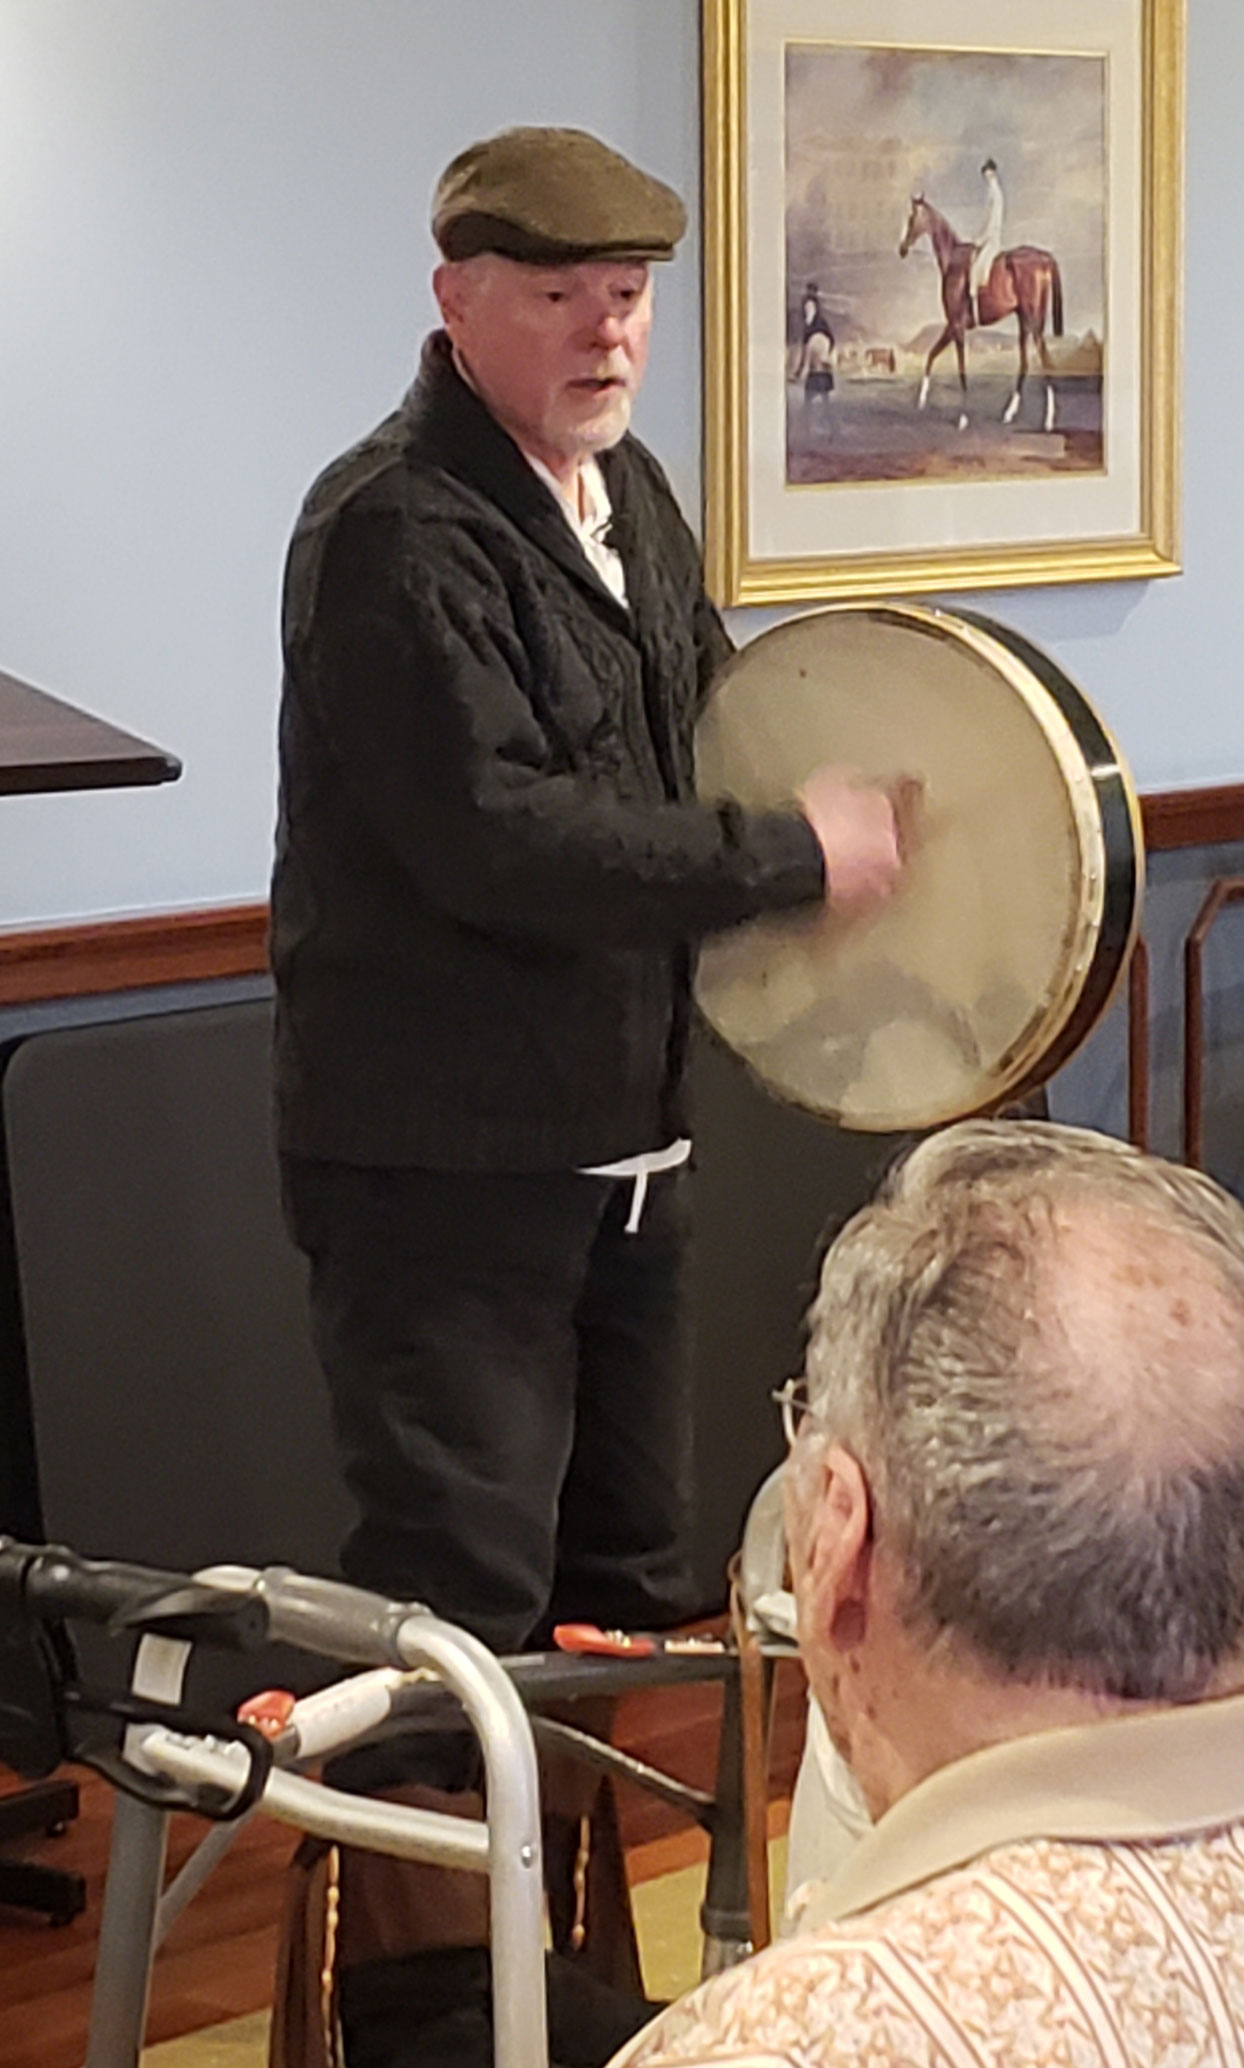 playing bodhran